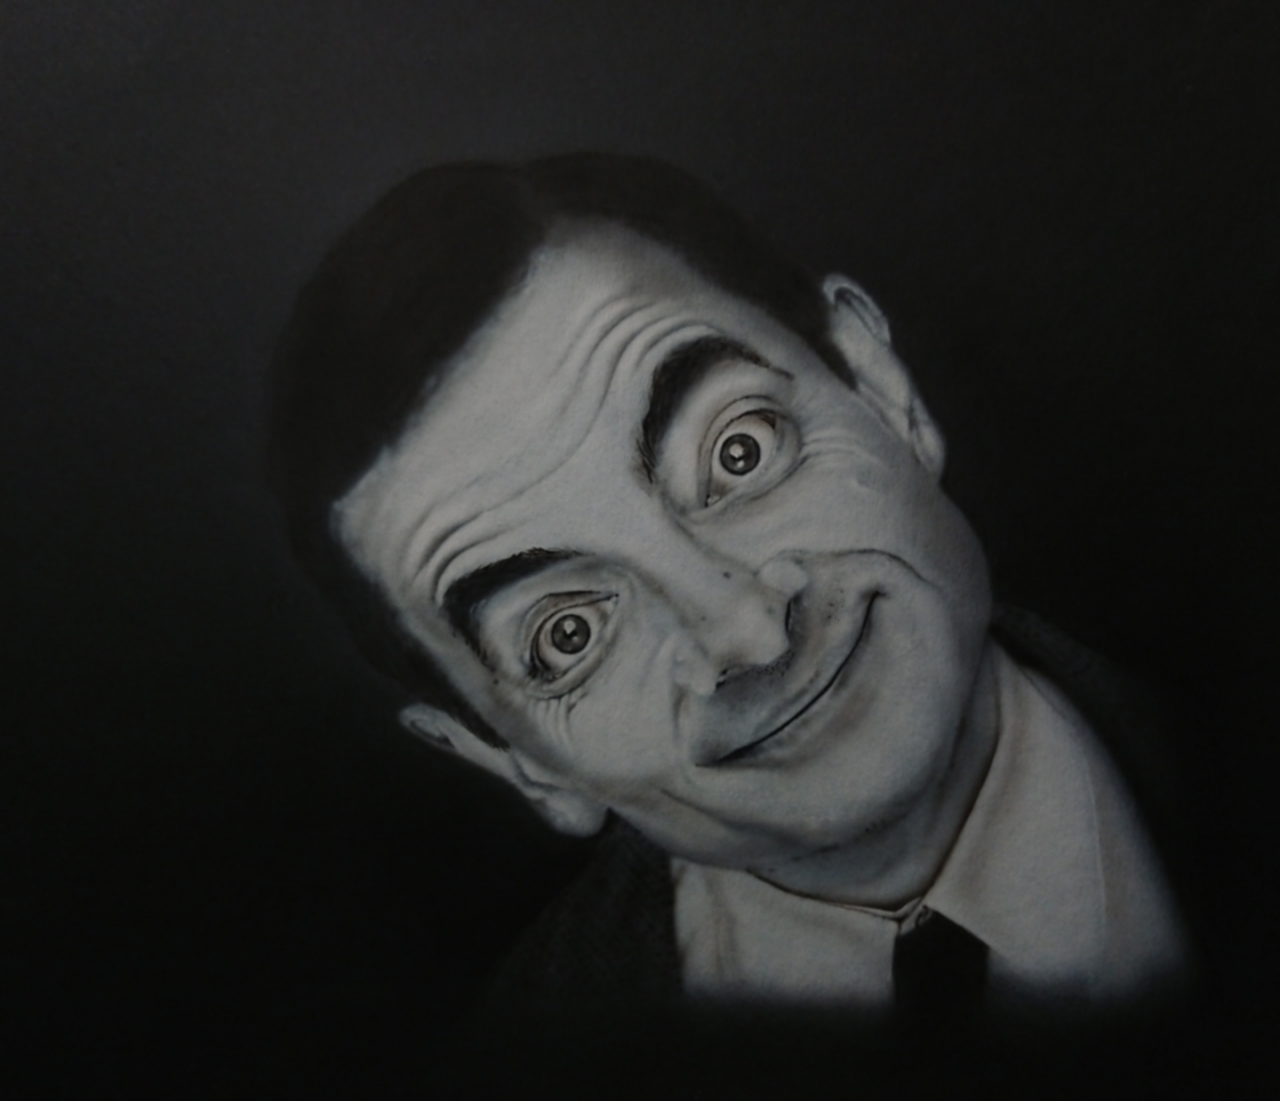 Mr Bean to go with Steve McQueen